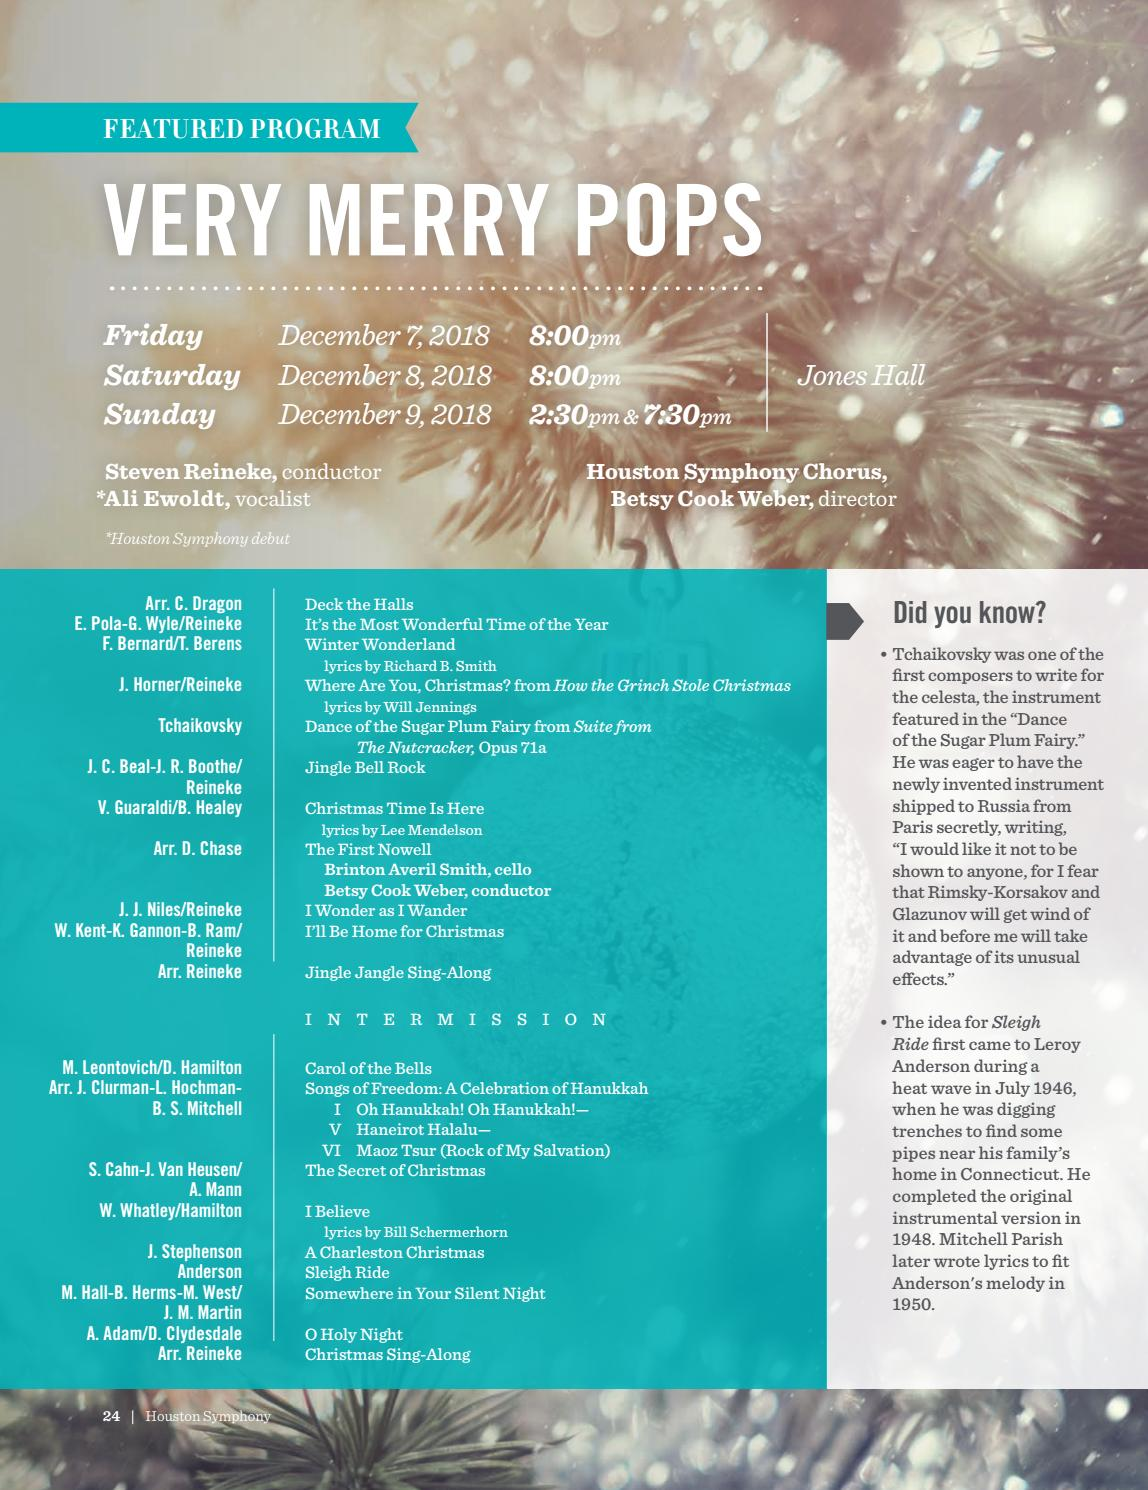 Where Are You Christmas Lyrics.Intune The Houston Symphony Magazine December 2018 By